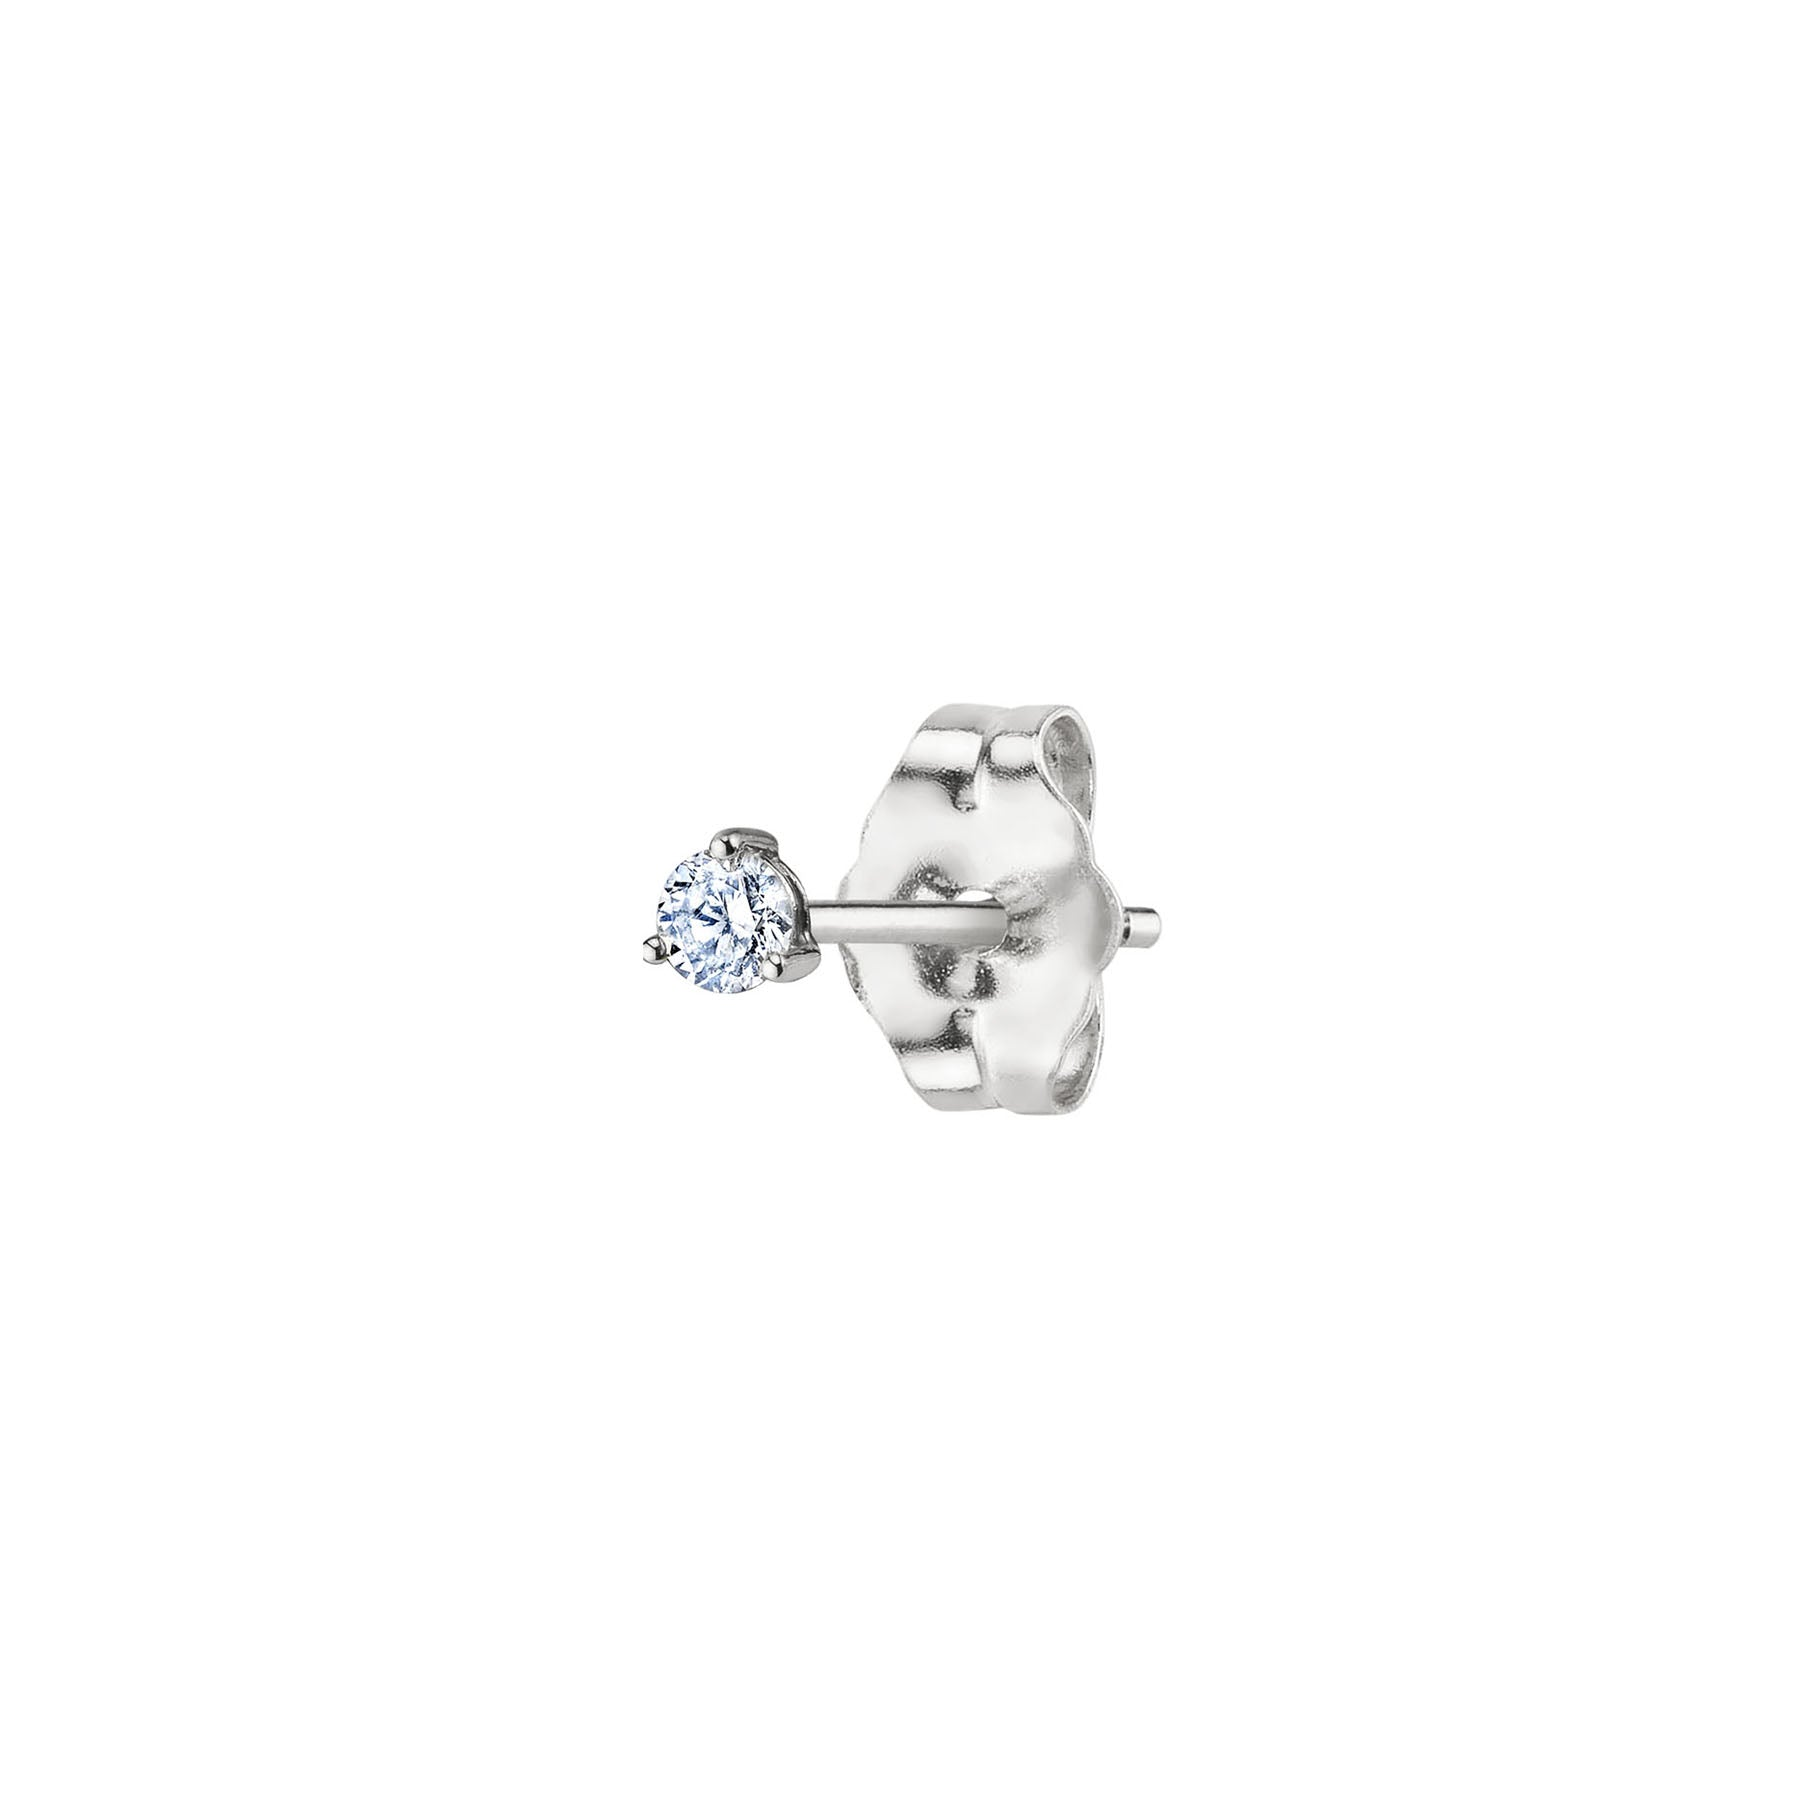 DIAMOND STUD #5 EARRING